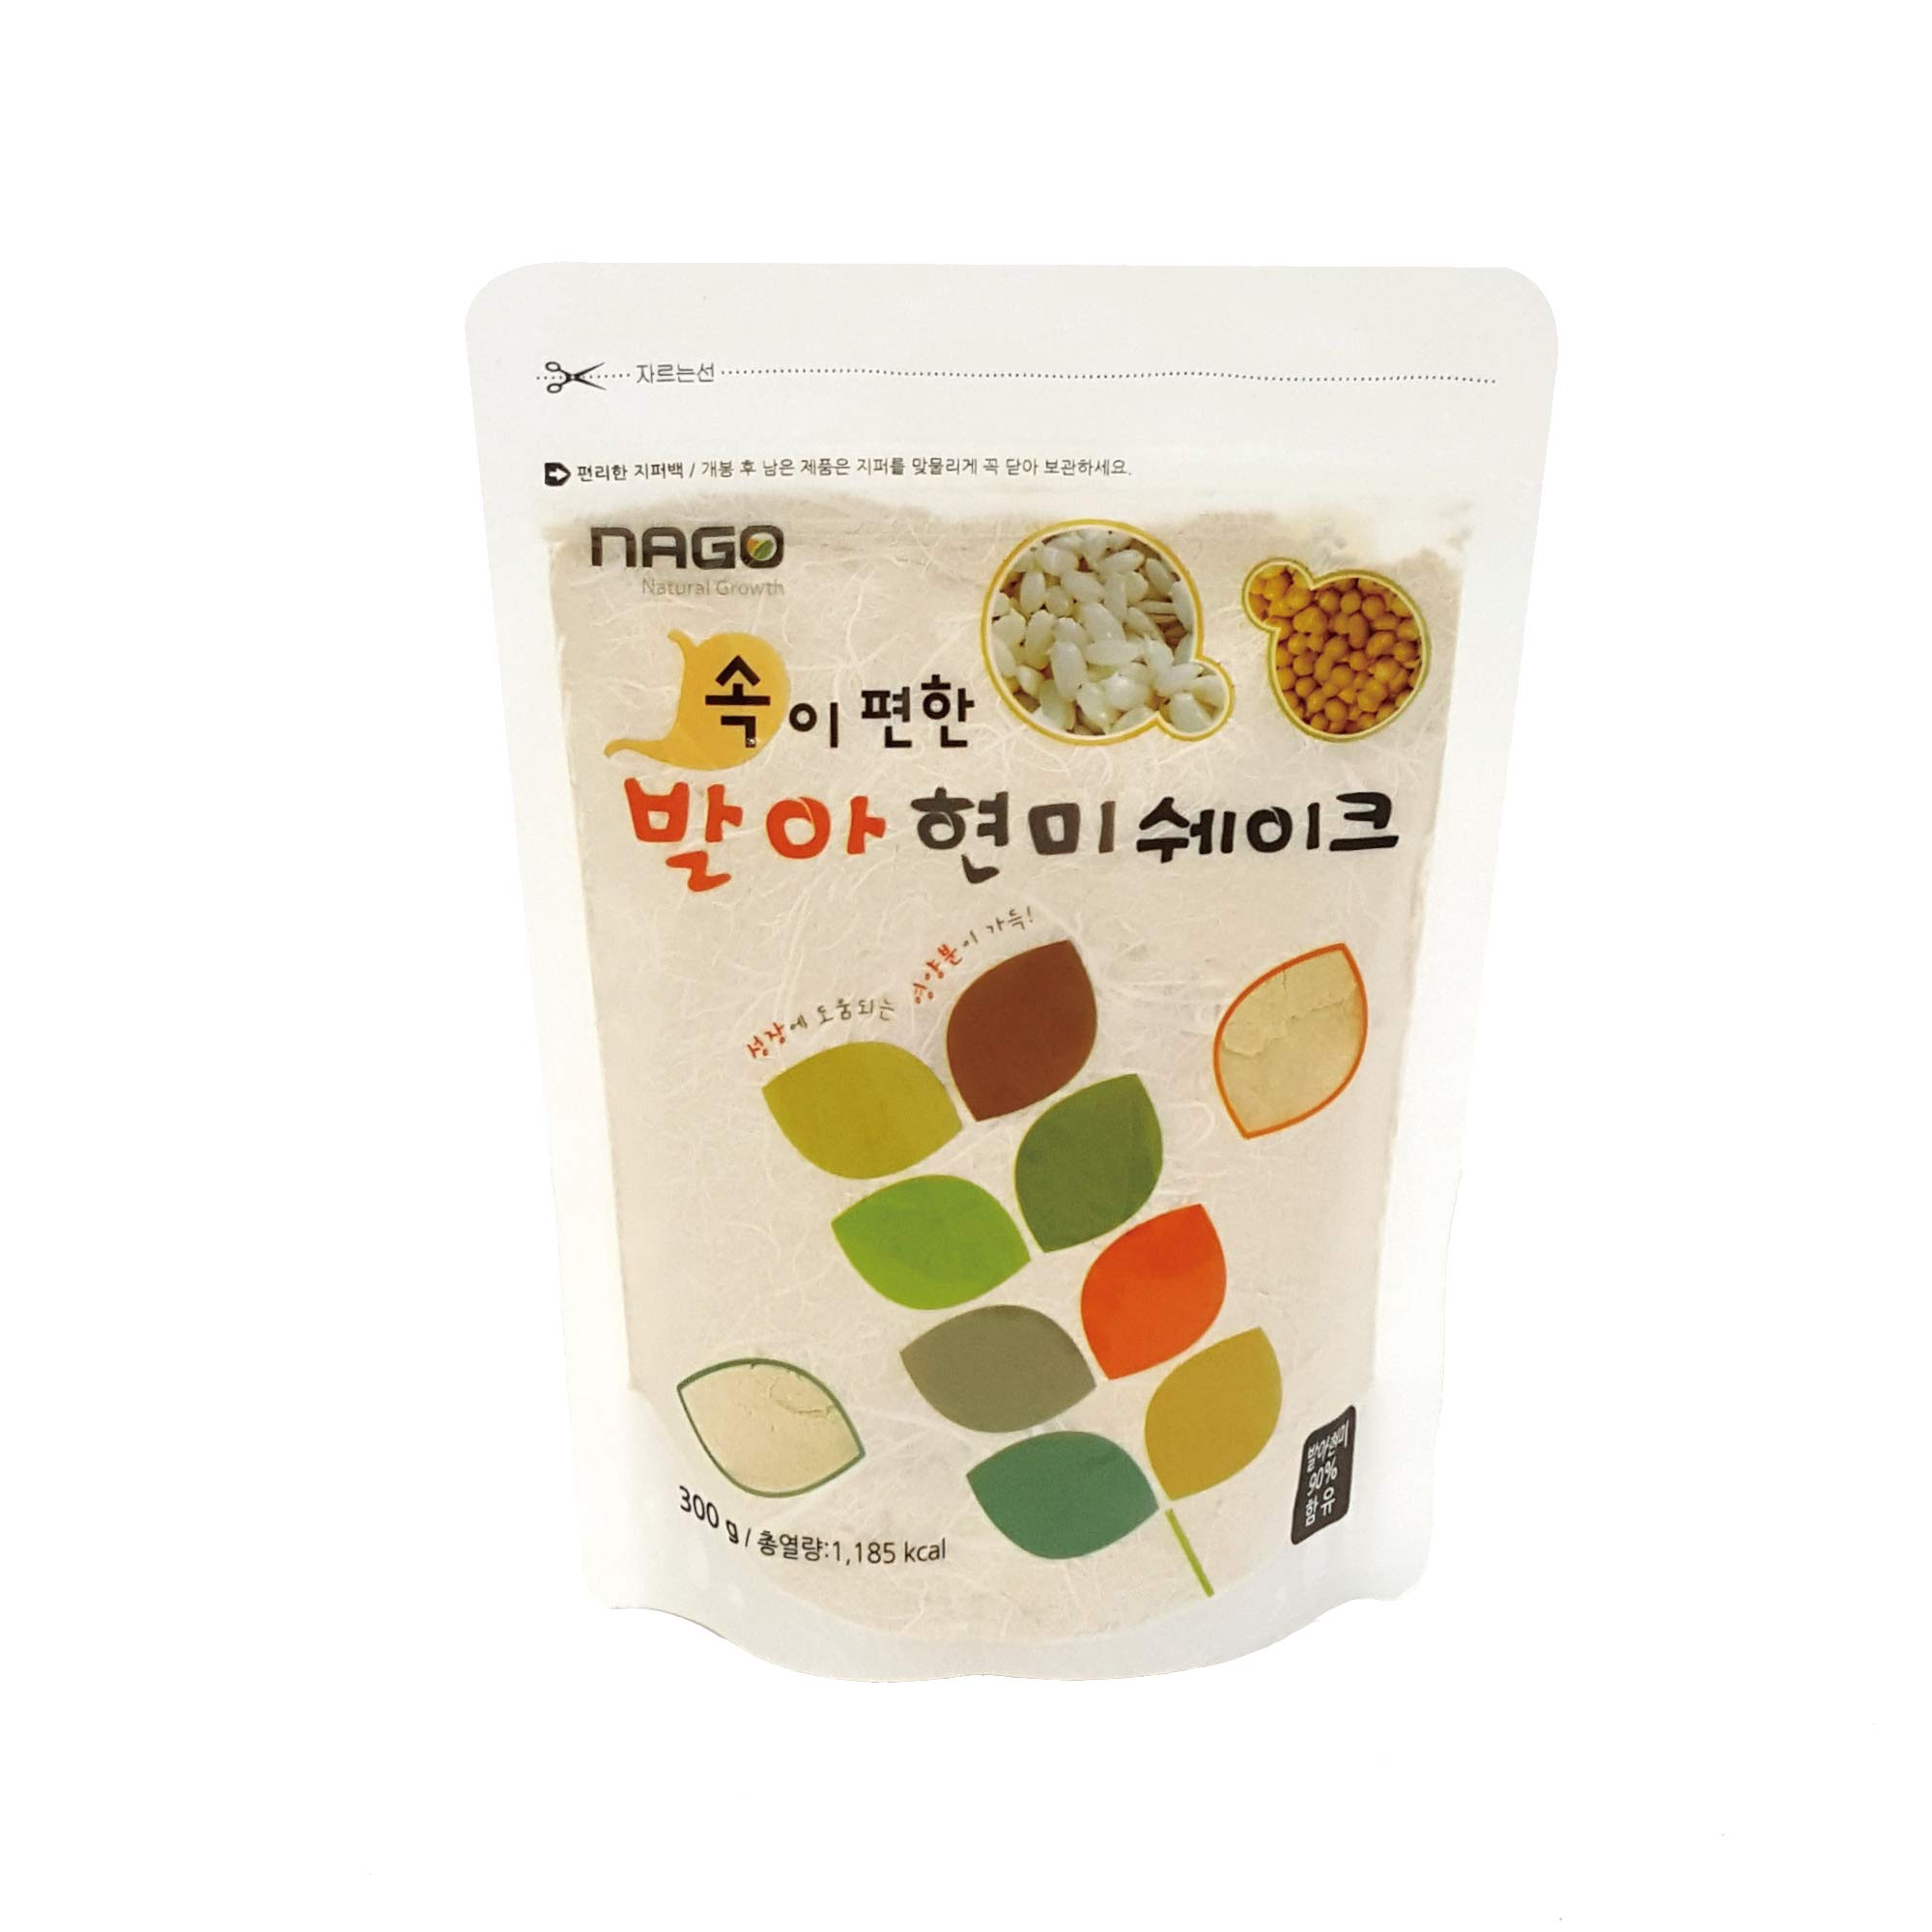 Gaba Rice Meal Replacement Shake - Healthy Meal Substitute 4 x 300g Germinated Brown Rice Powder (4 x 300g) by NAGO